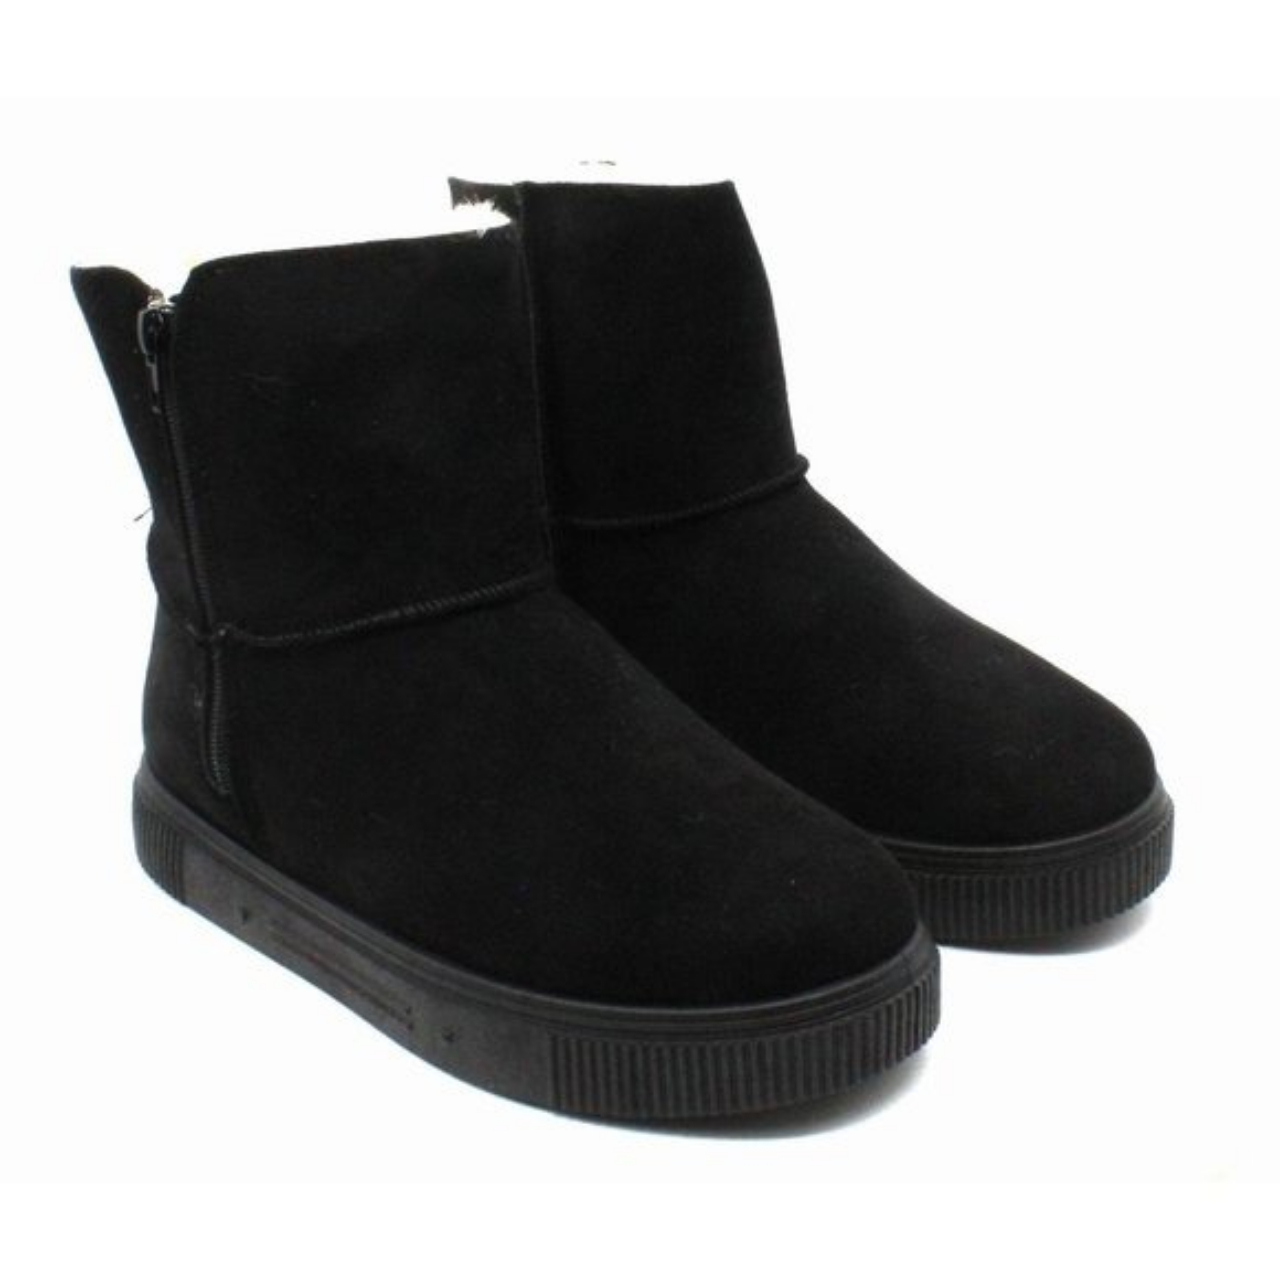 Product Image 1 - Journee Collection Women's Stelly Winter